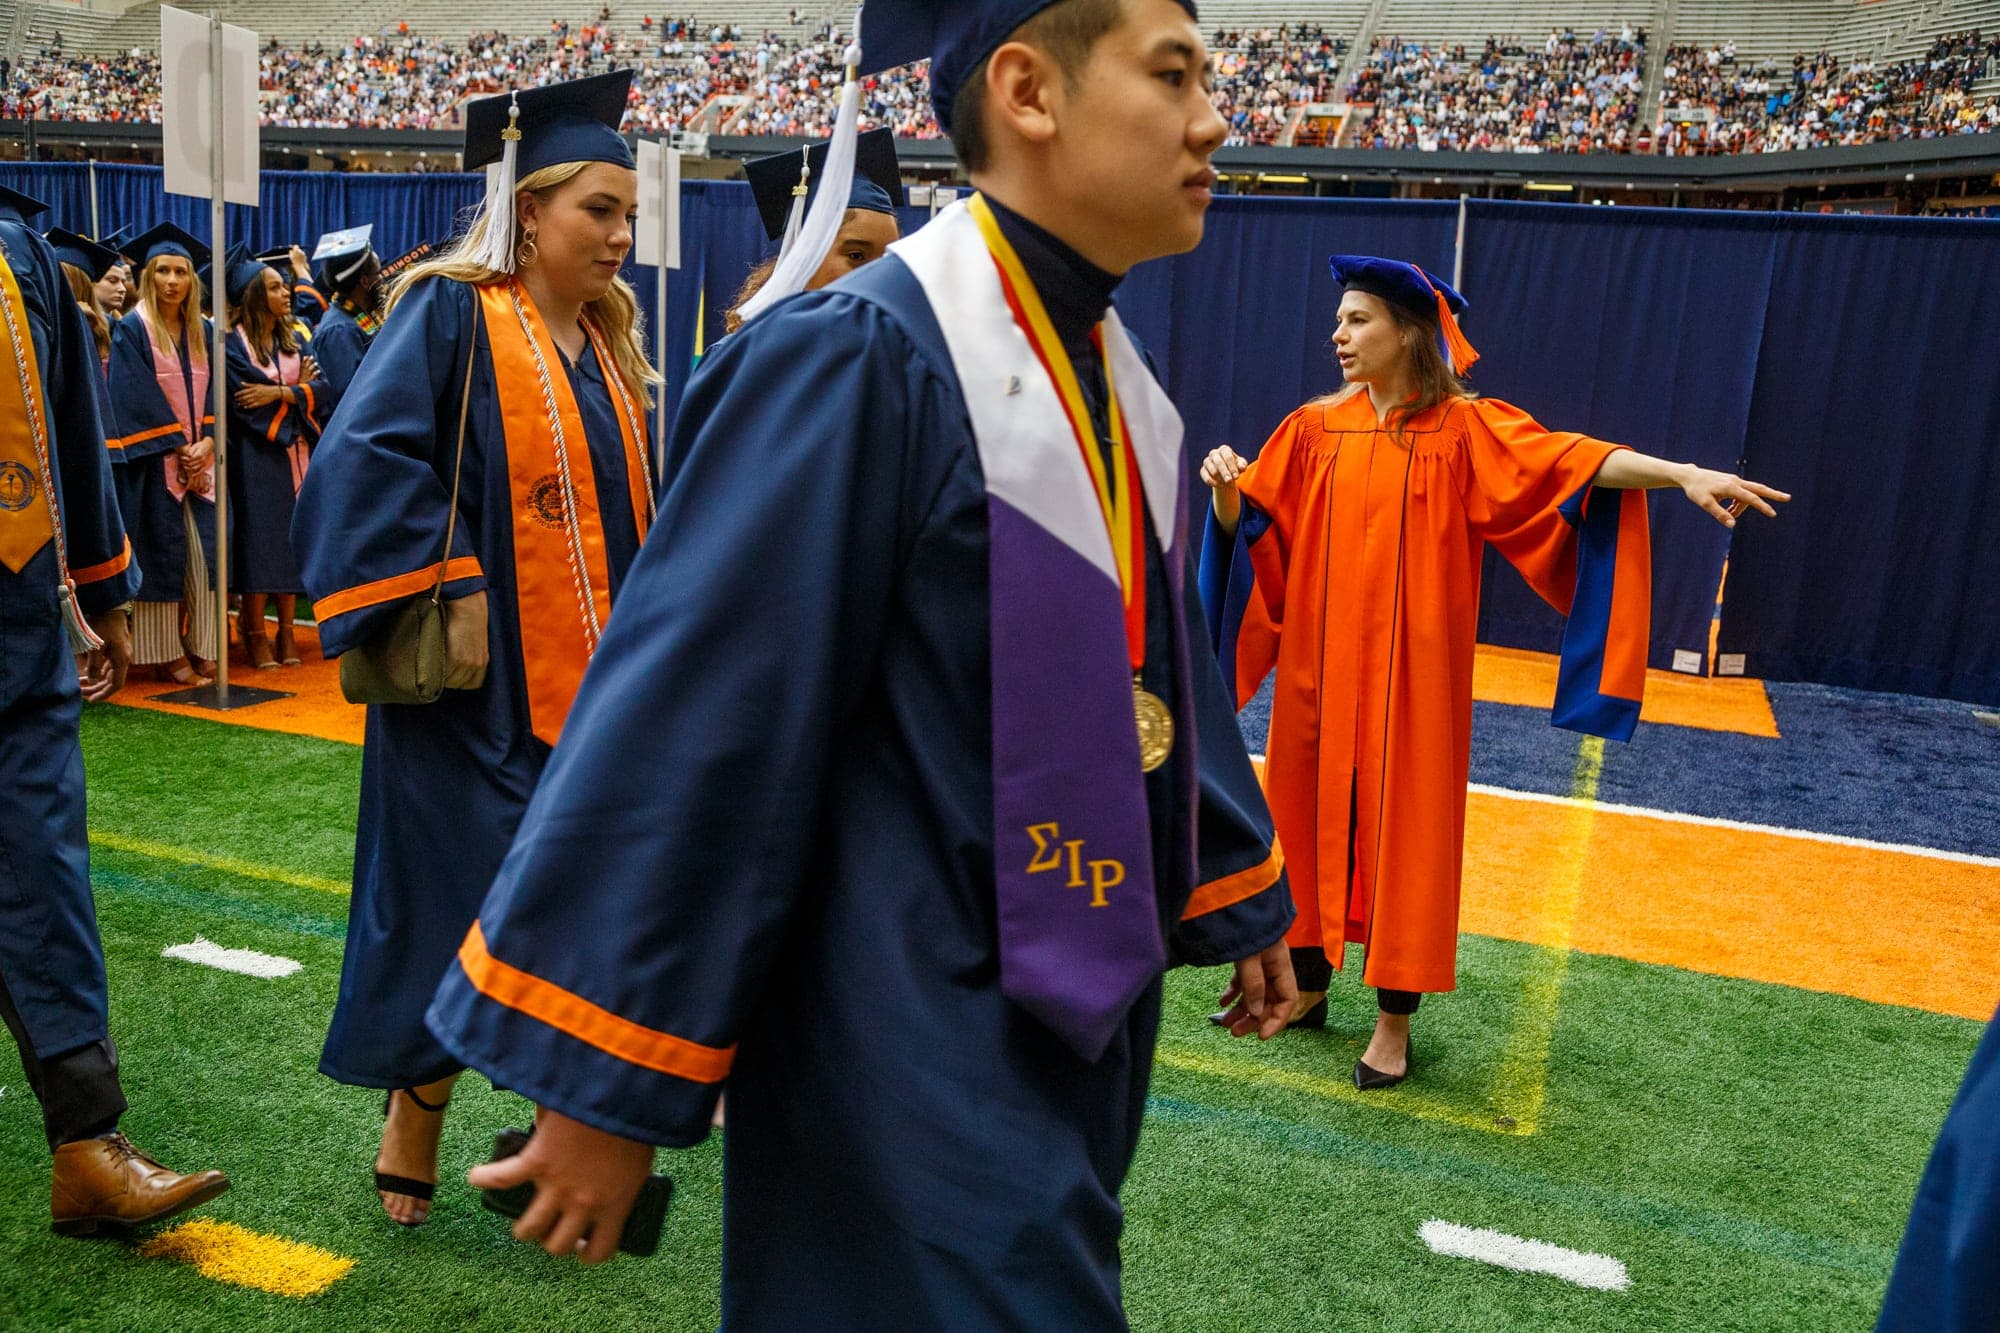 Students walking out at commencement